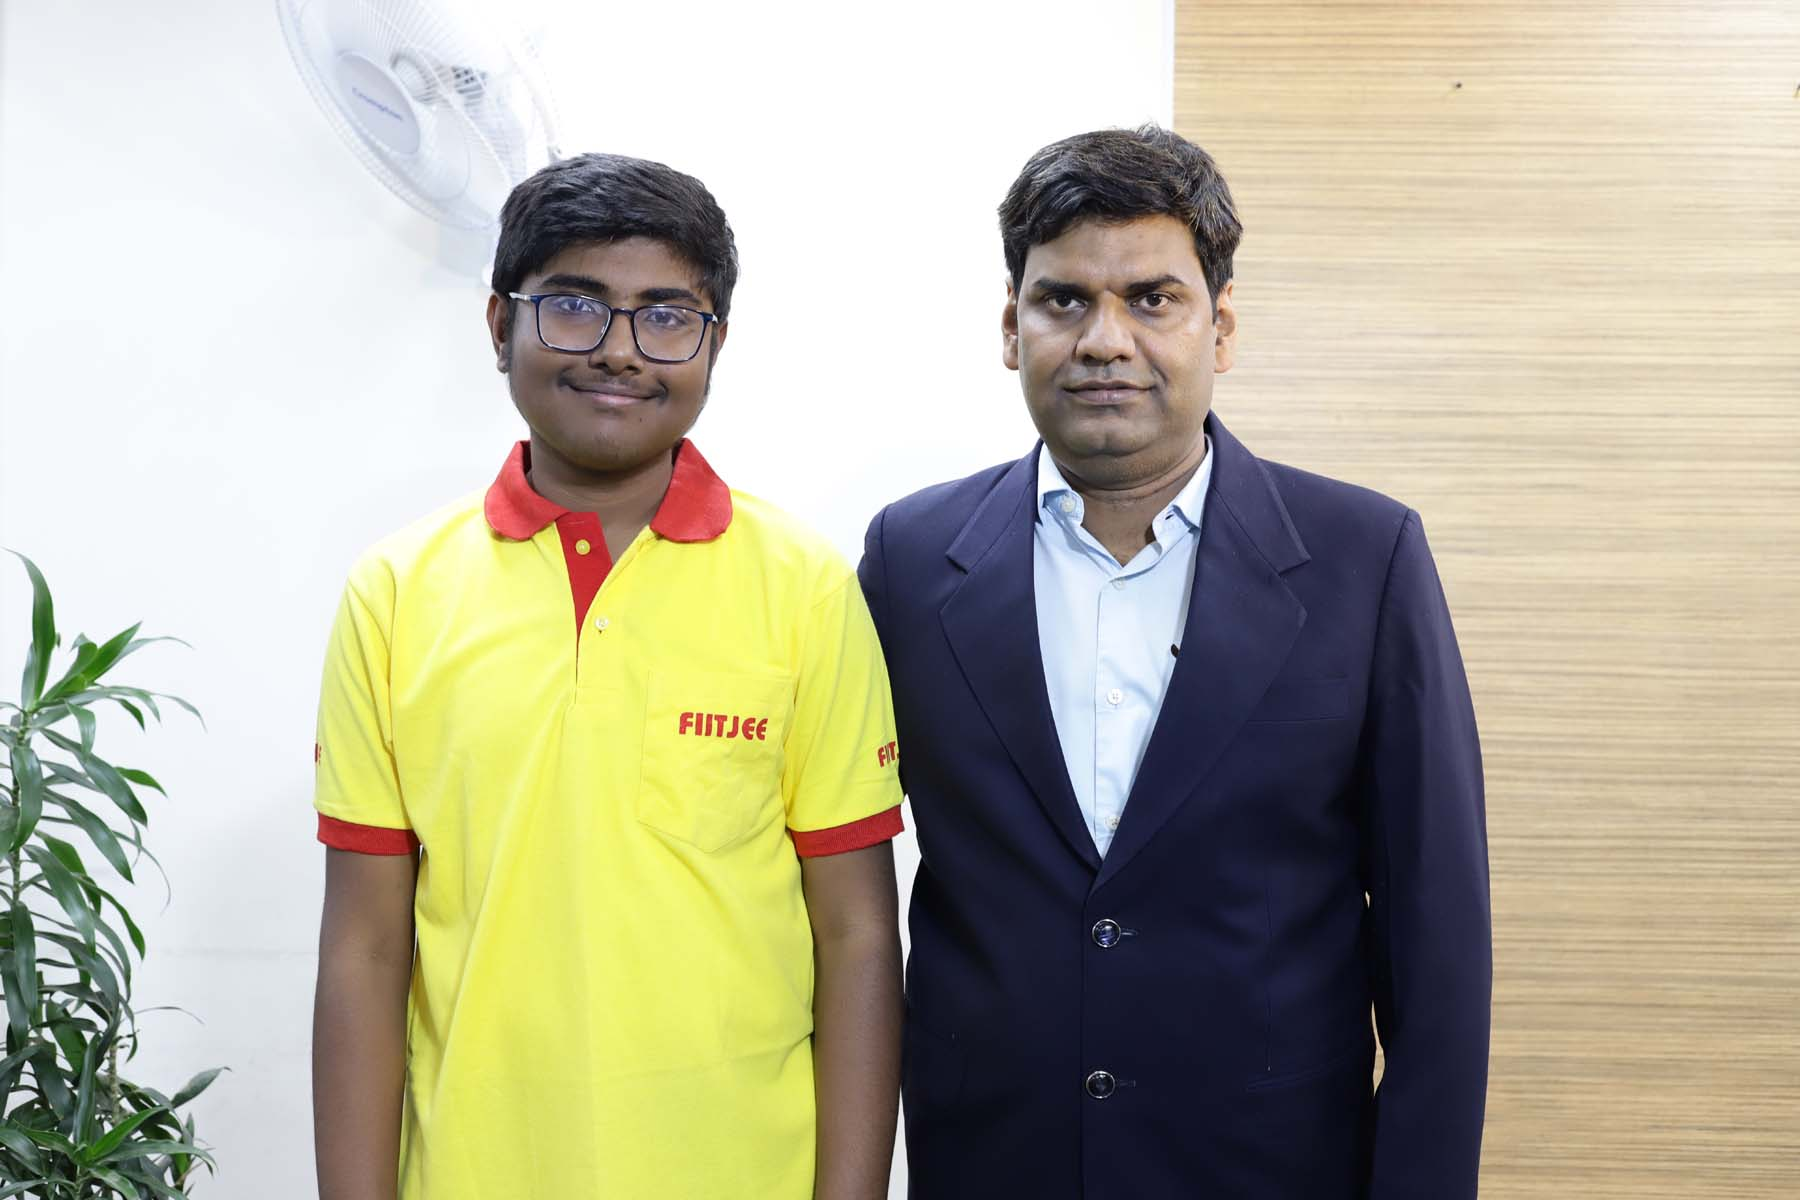 WORLD TOPPER_DHANANJAY RAMAN WITH TEACHER